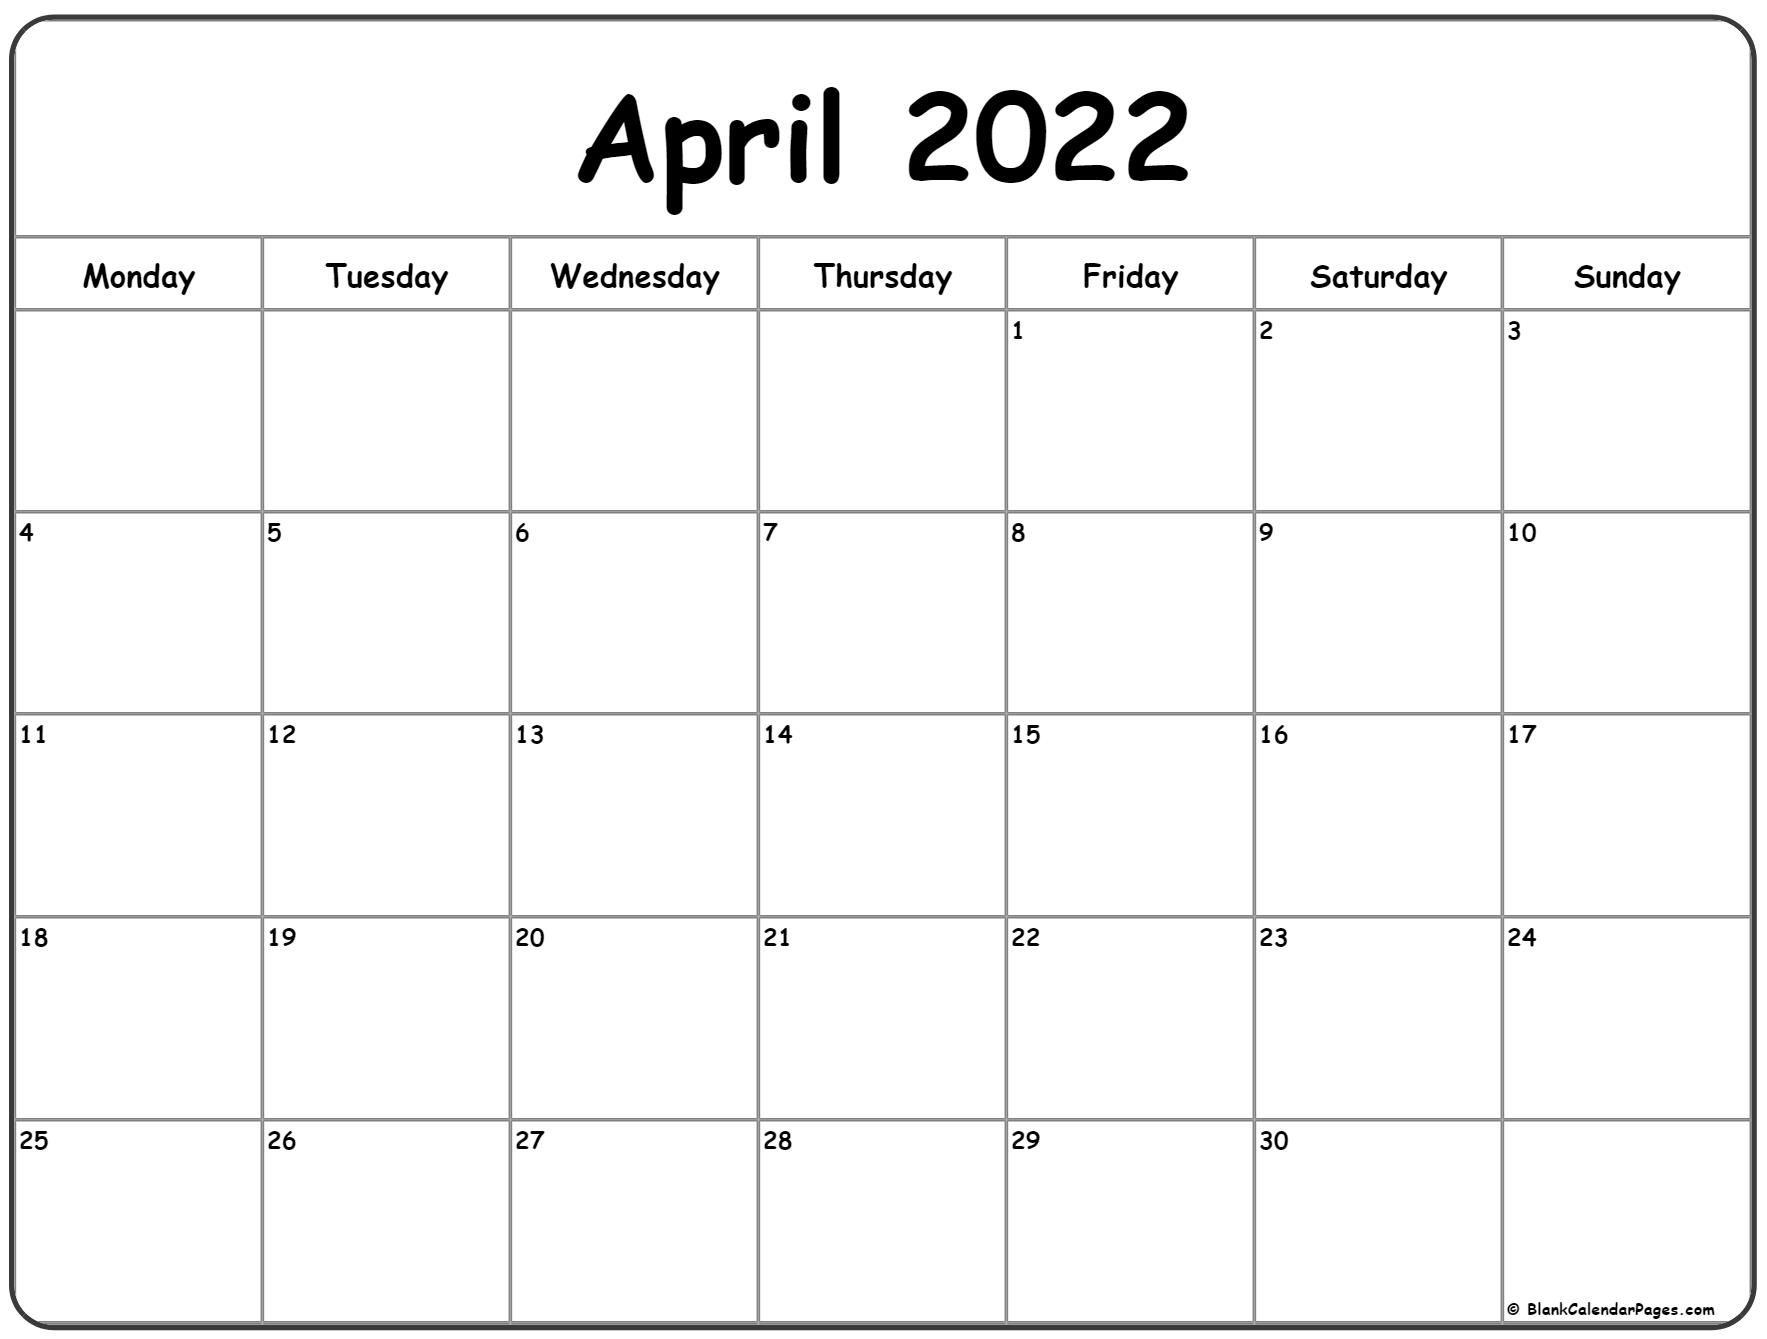 April 2022 Monday calendar. Monday to Sunday